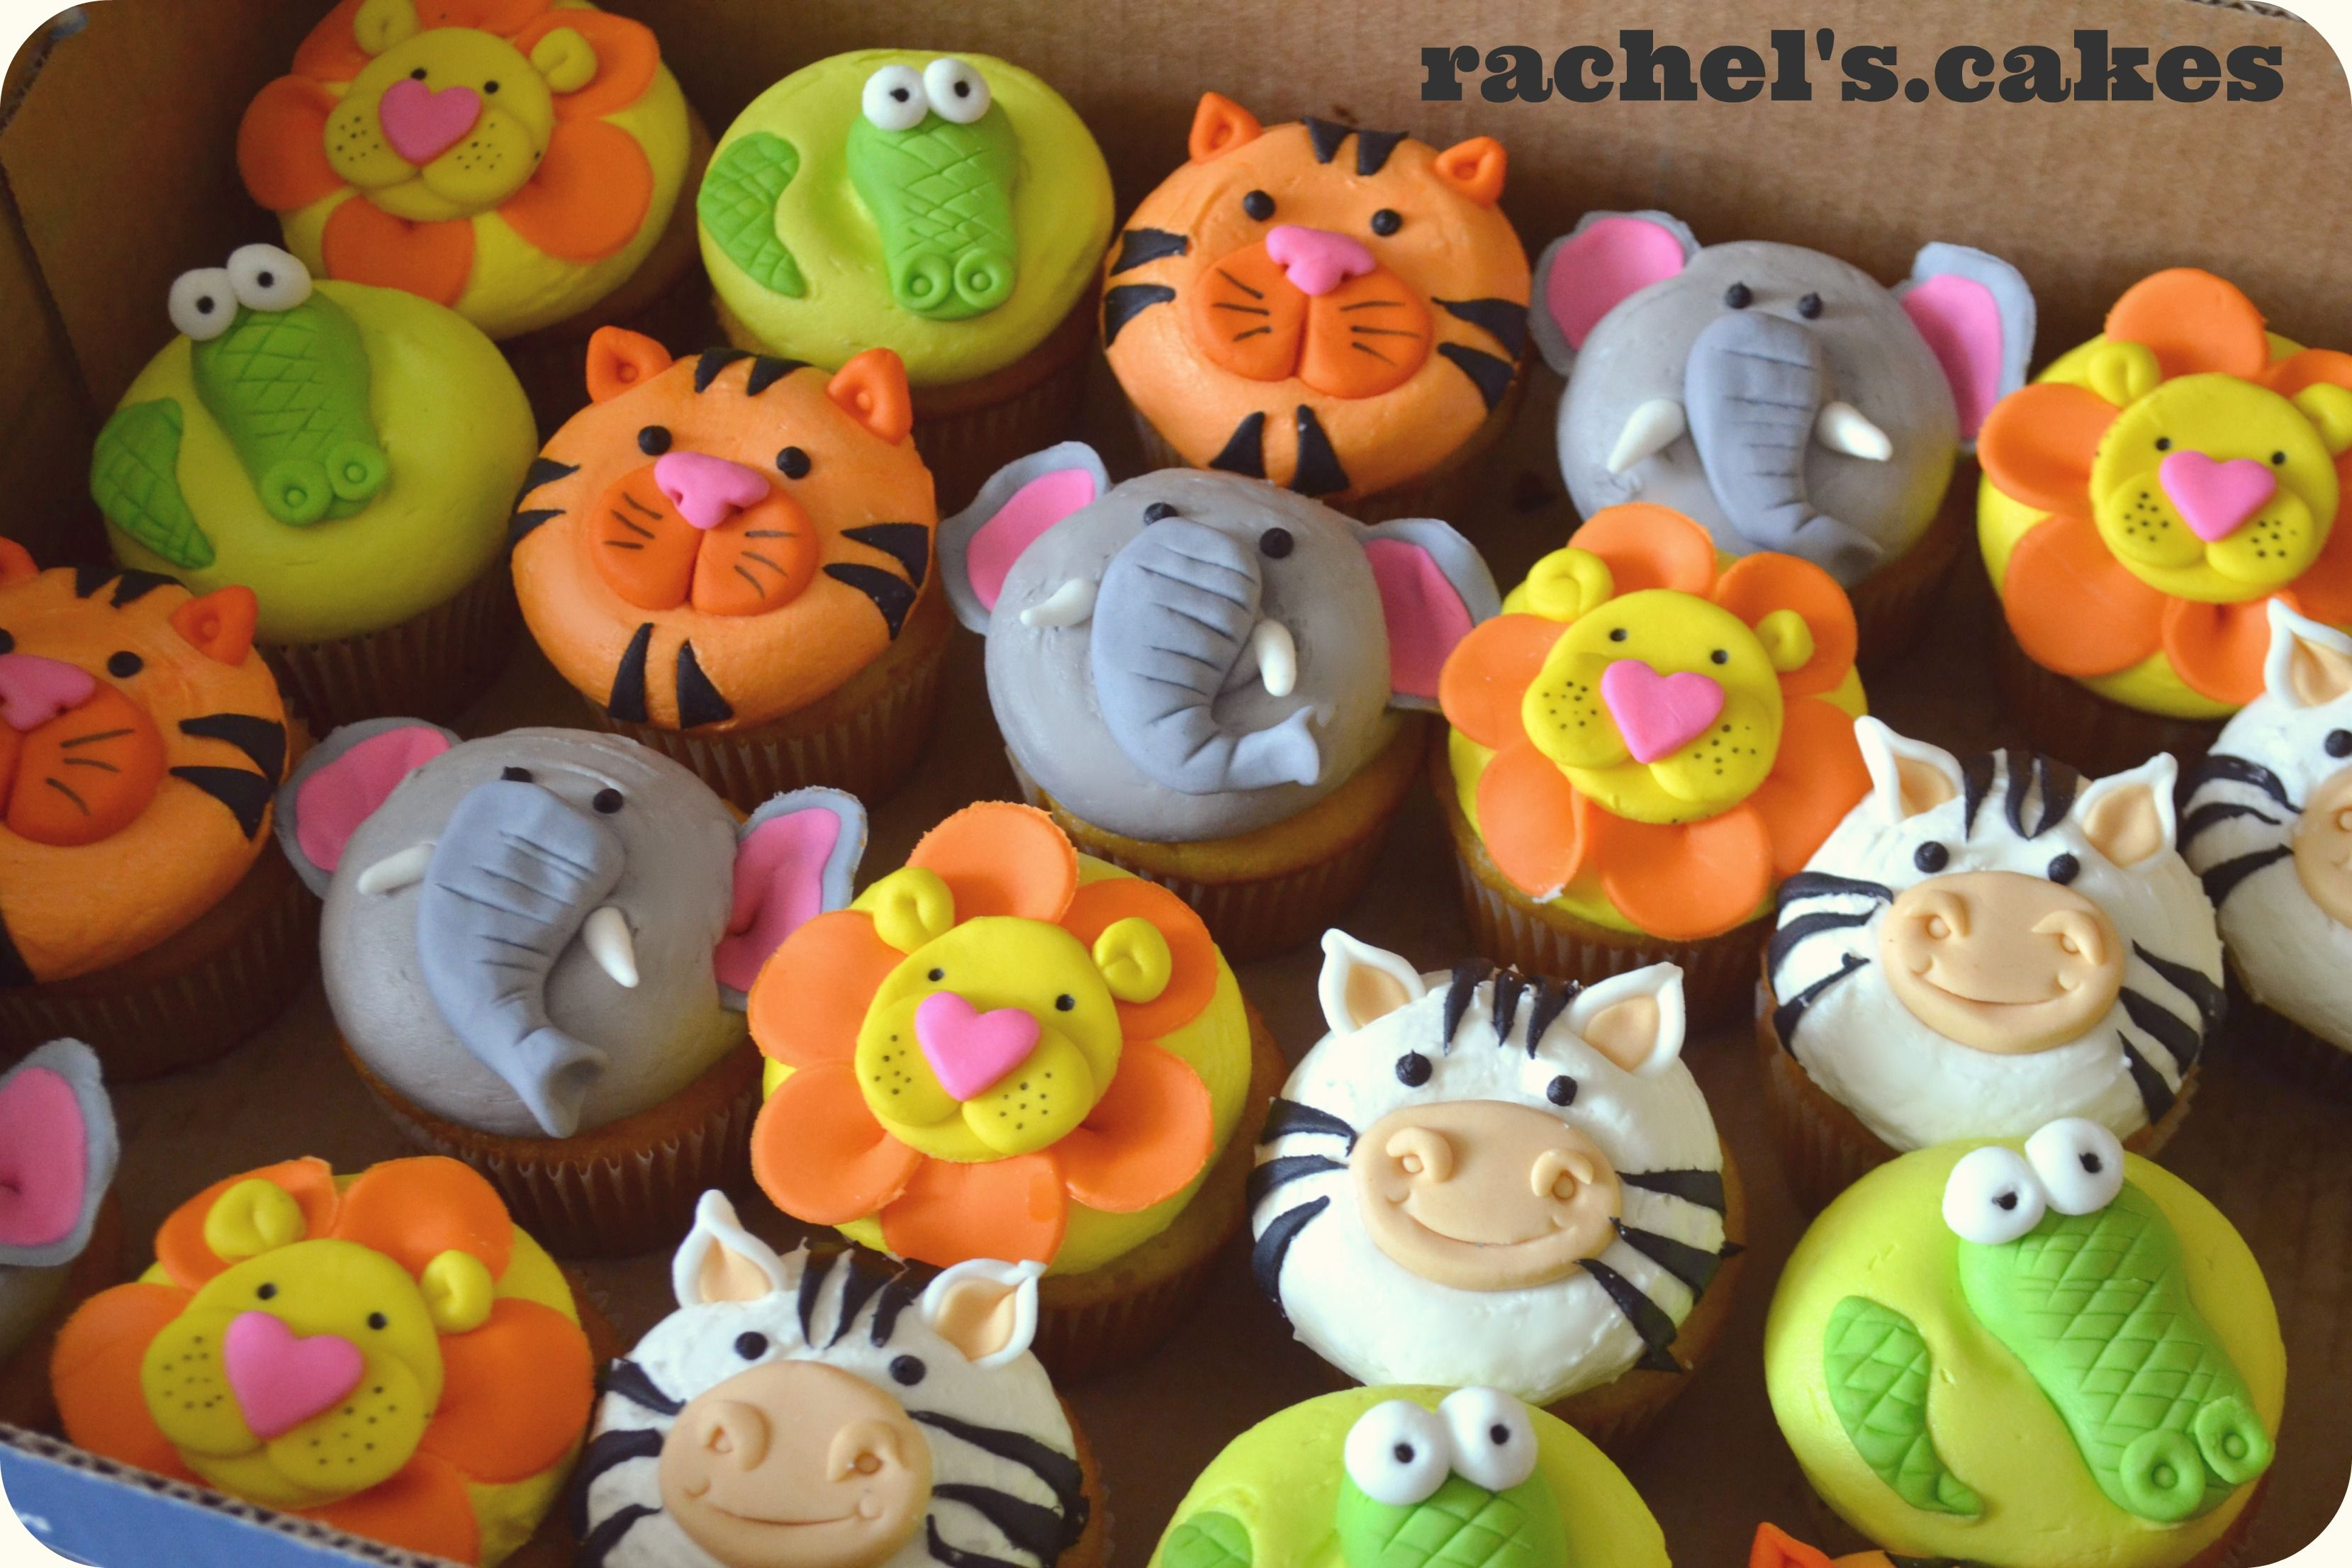 Magdalenas Decoradas Infantiles Zoo Animal Cupcakes Cupcakes N Mini Treats Galletas Galletas